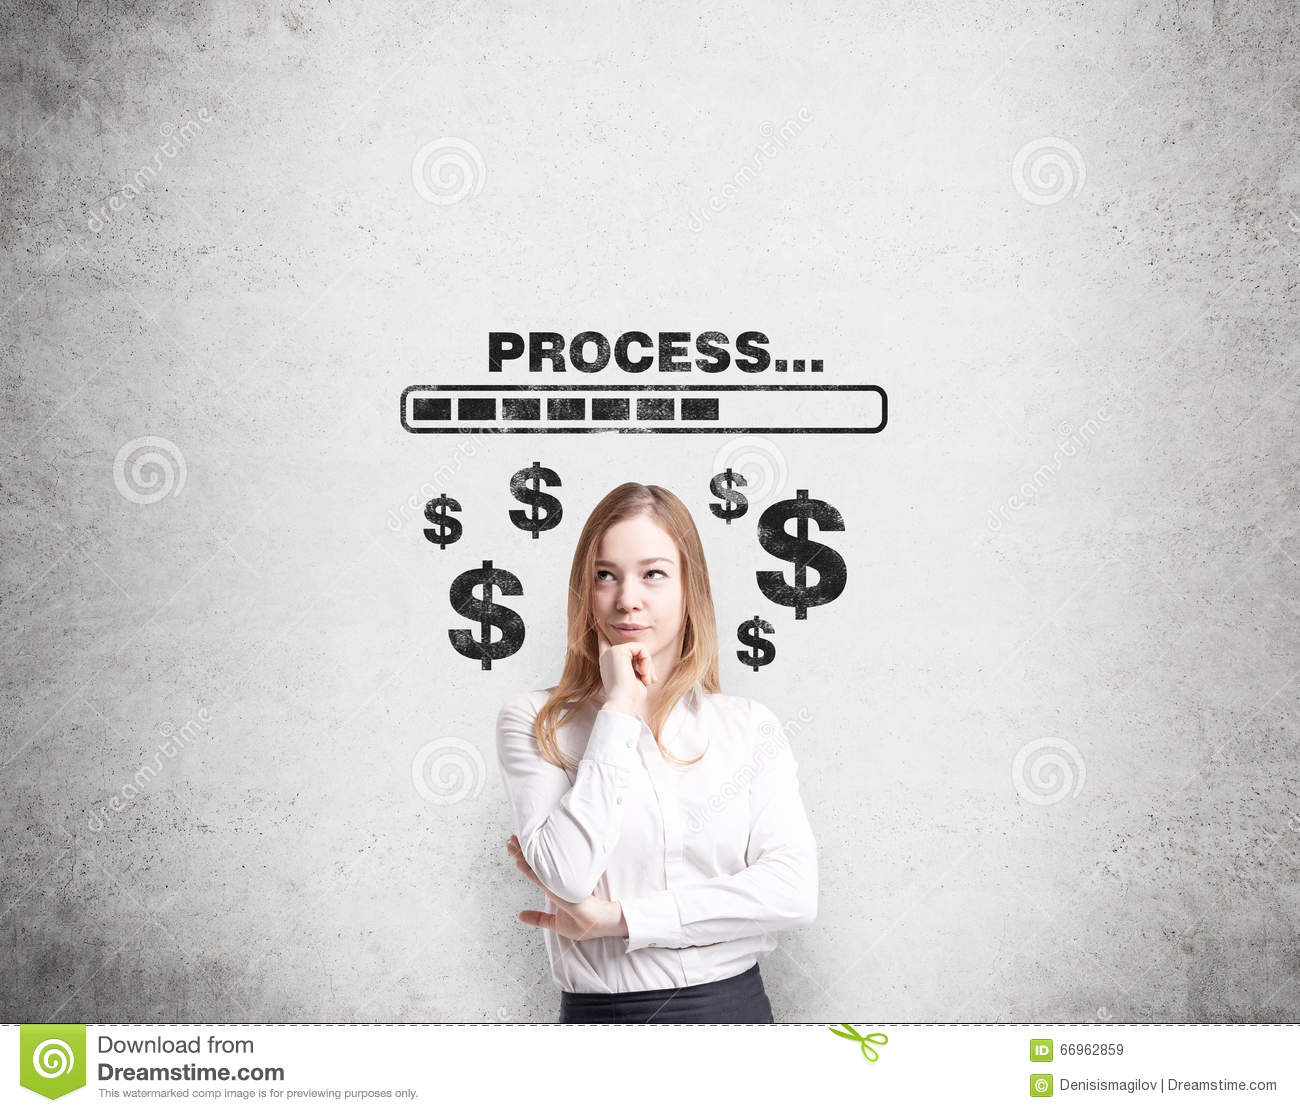 How To Earn Money? Stock Photo Image: 66962859